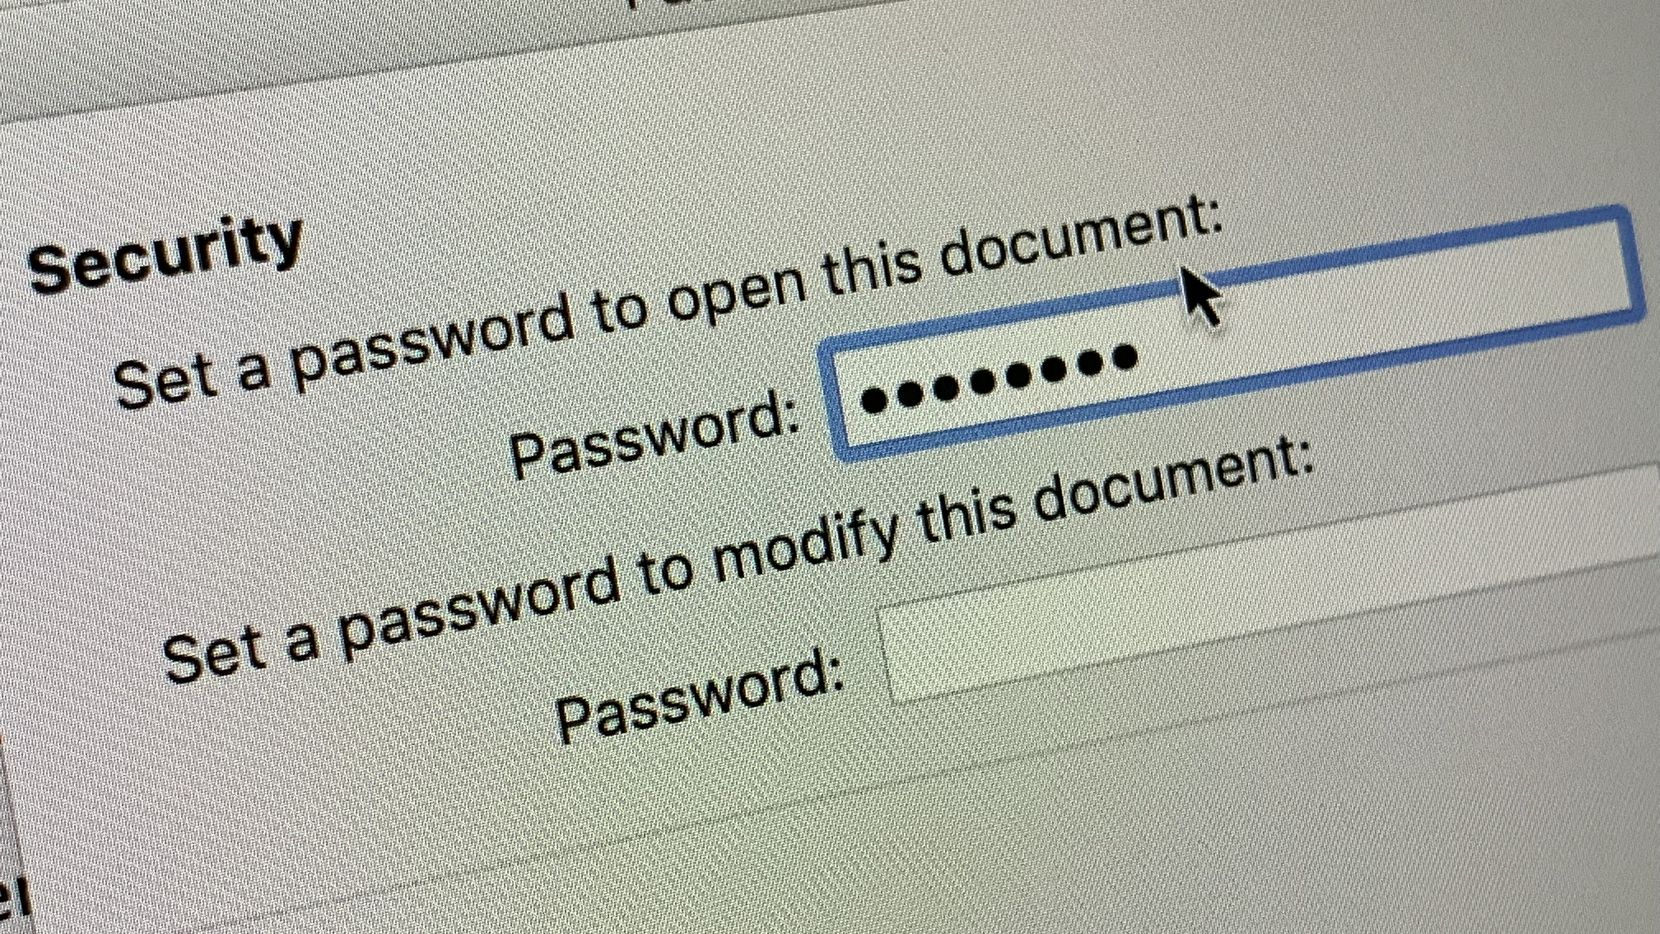 The dialog box to password protect a Microsoft Word document.